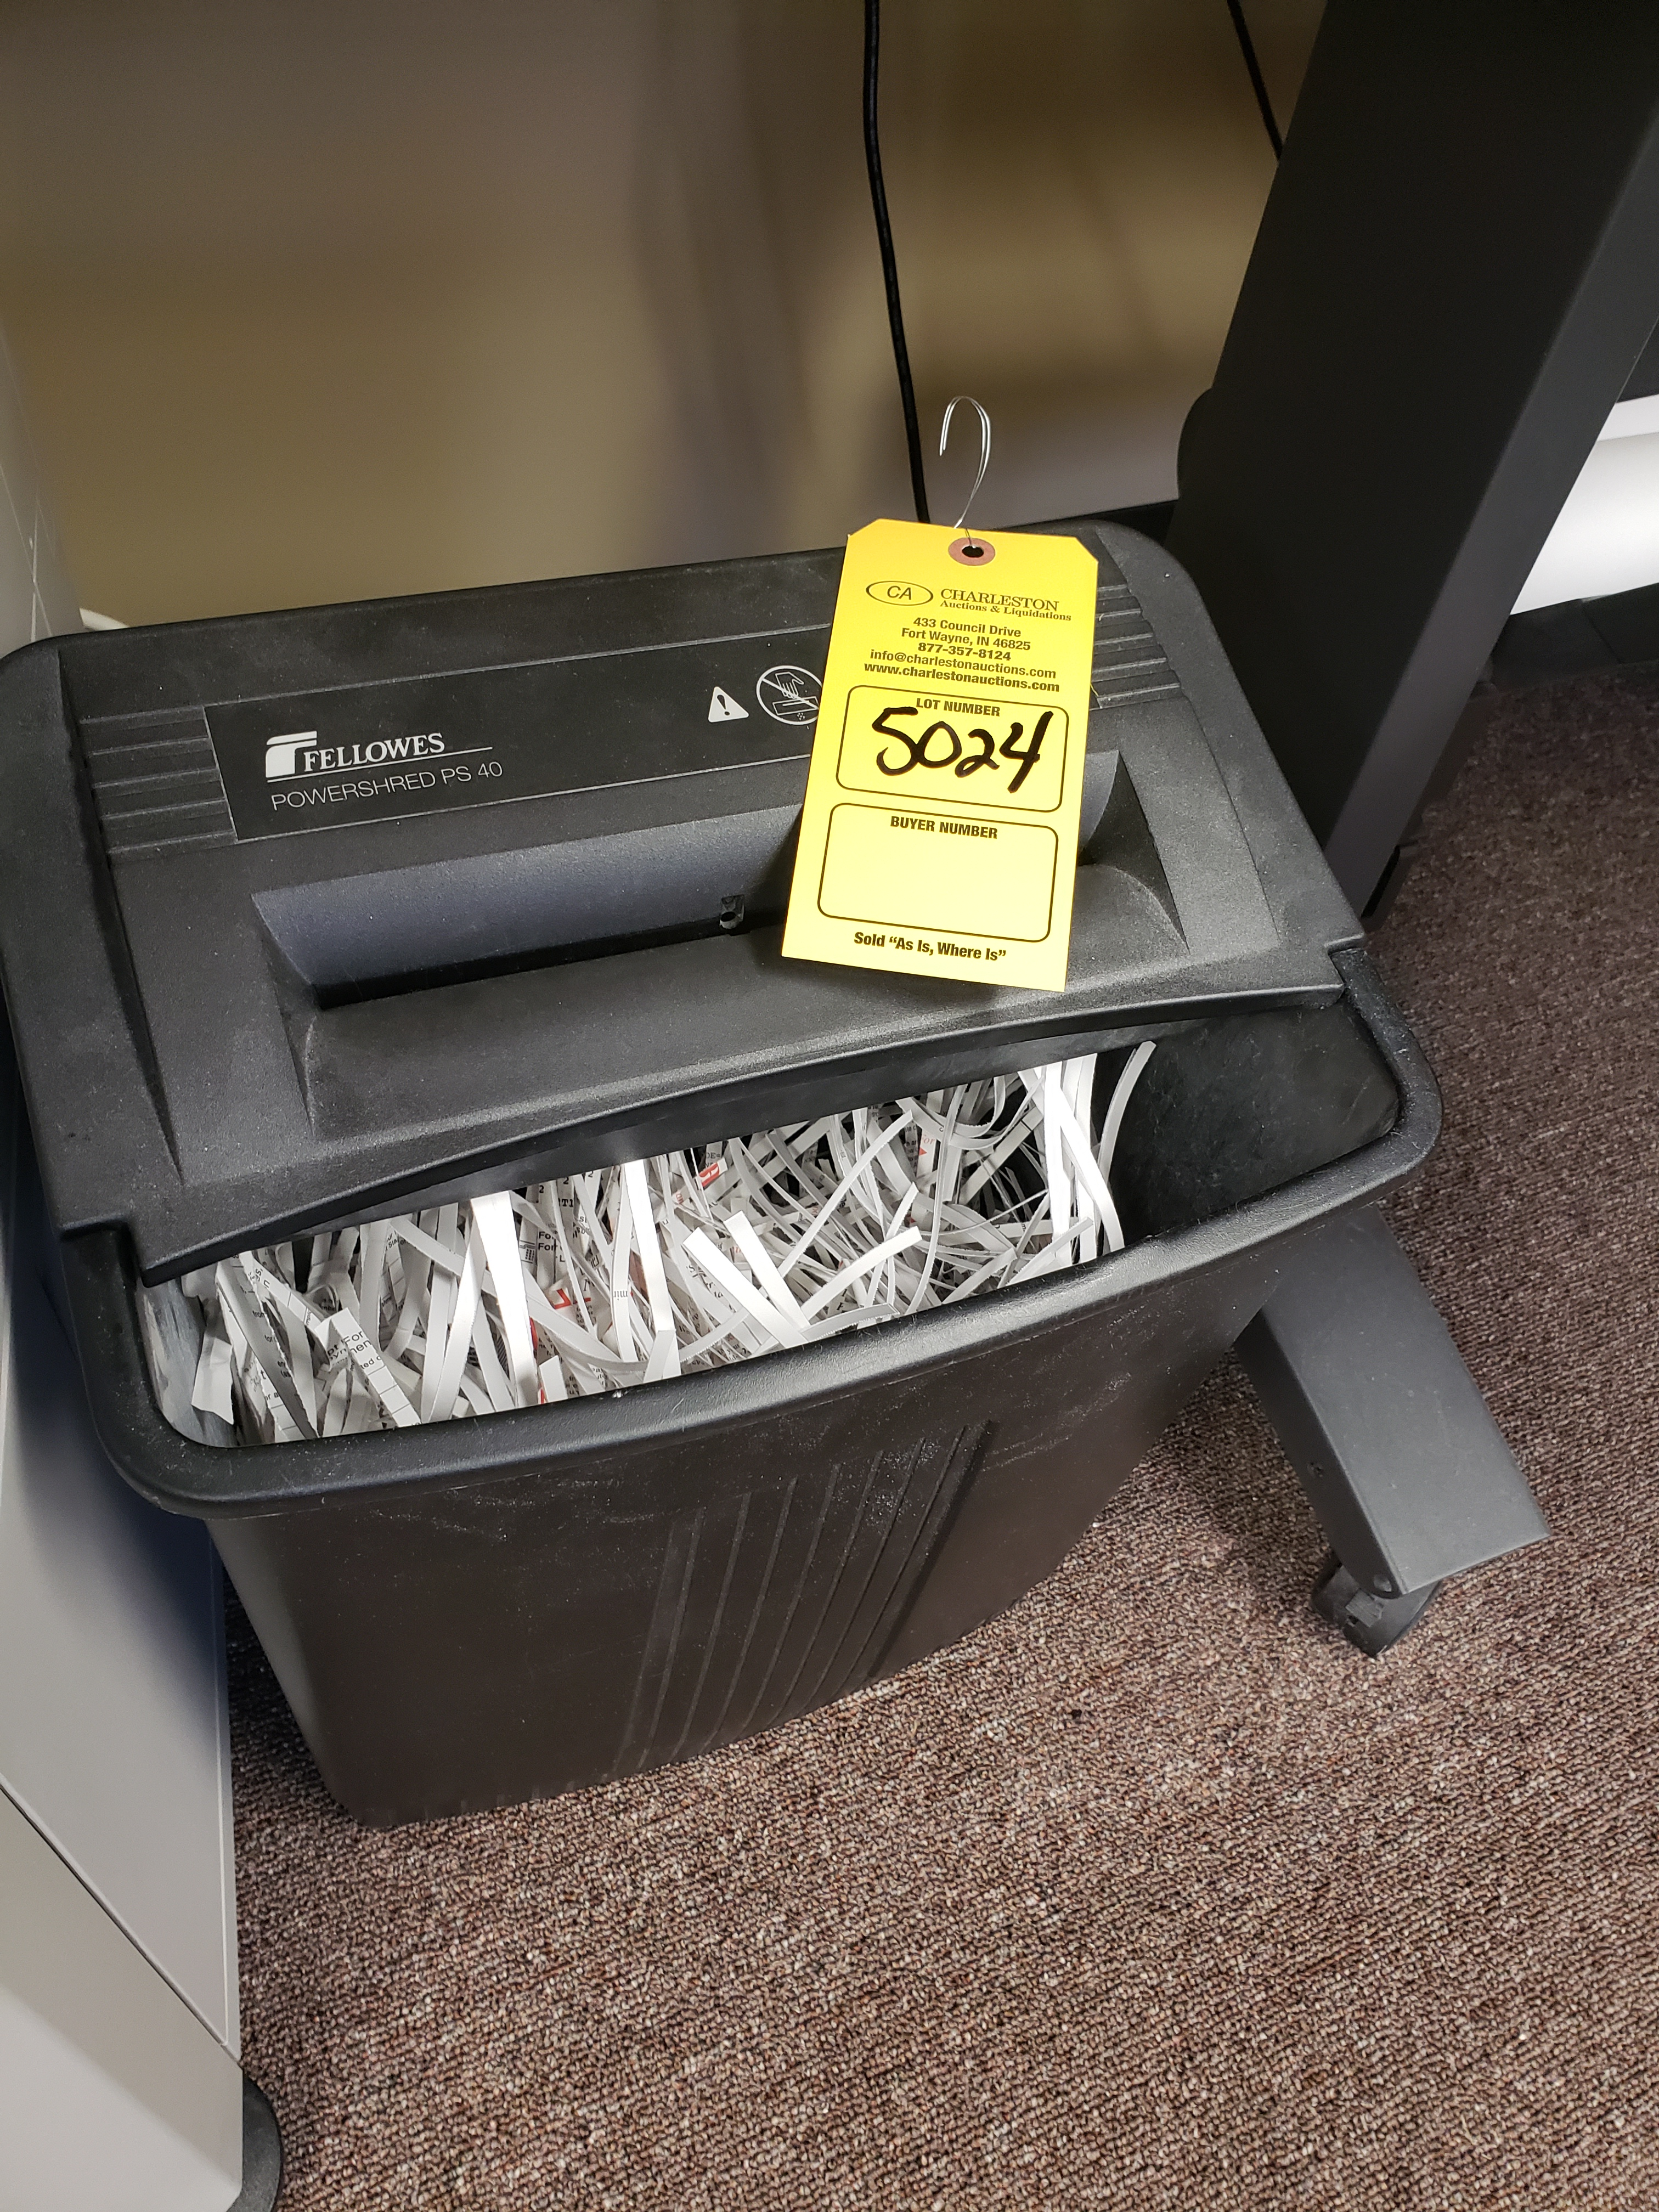 Lot 5024 - PAPER SHREDDER FELLOWES POWERSHRED PS40 (LOCATED AT: 16335 LIMA ROAD BLDG. 4 HUNTERTOWN, IN 46748)